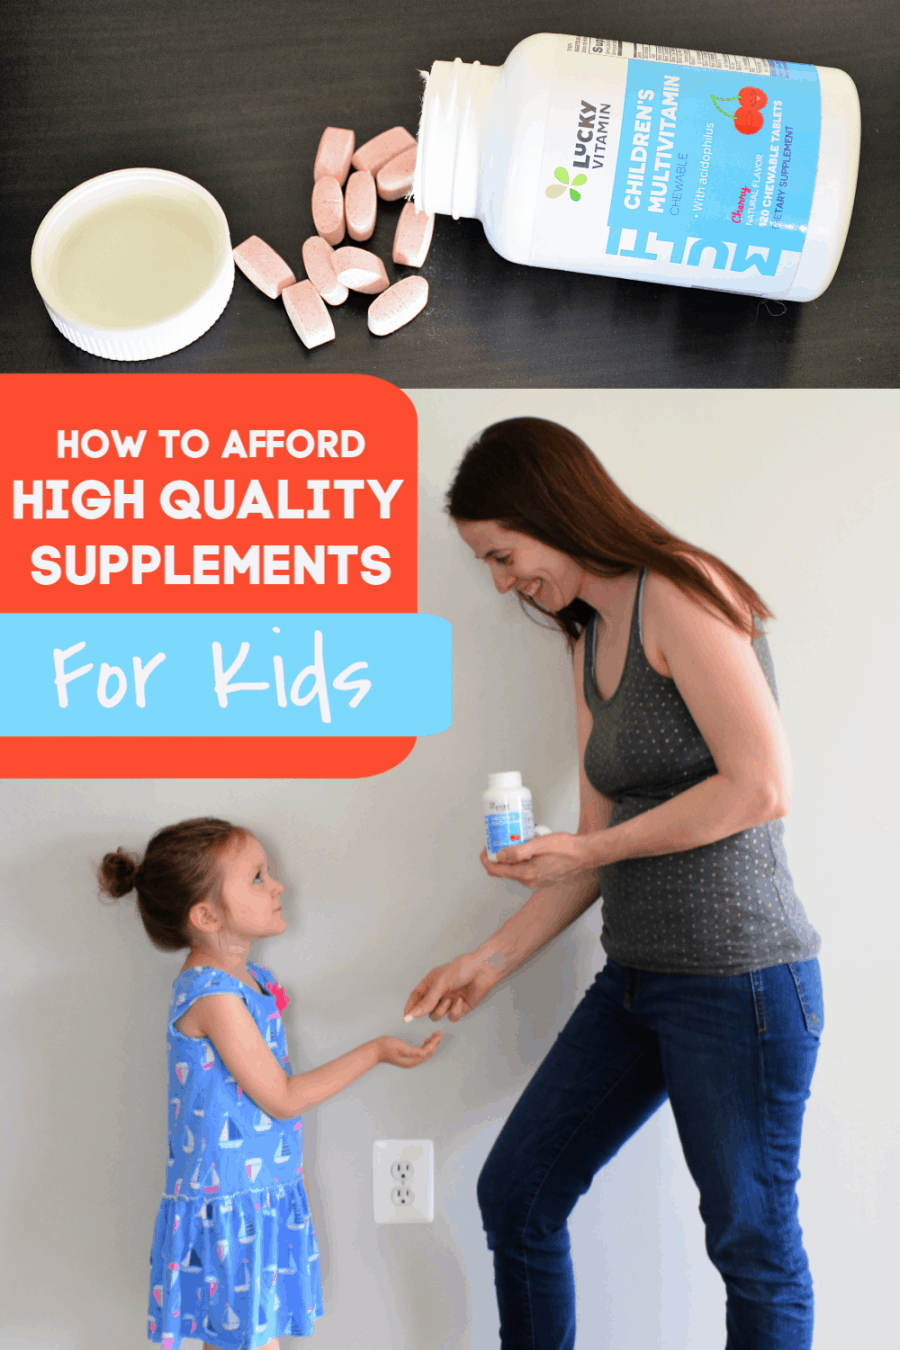 How to afford high-quality supplements for kids